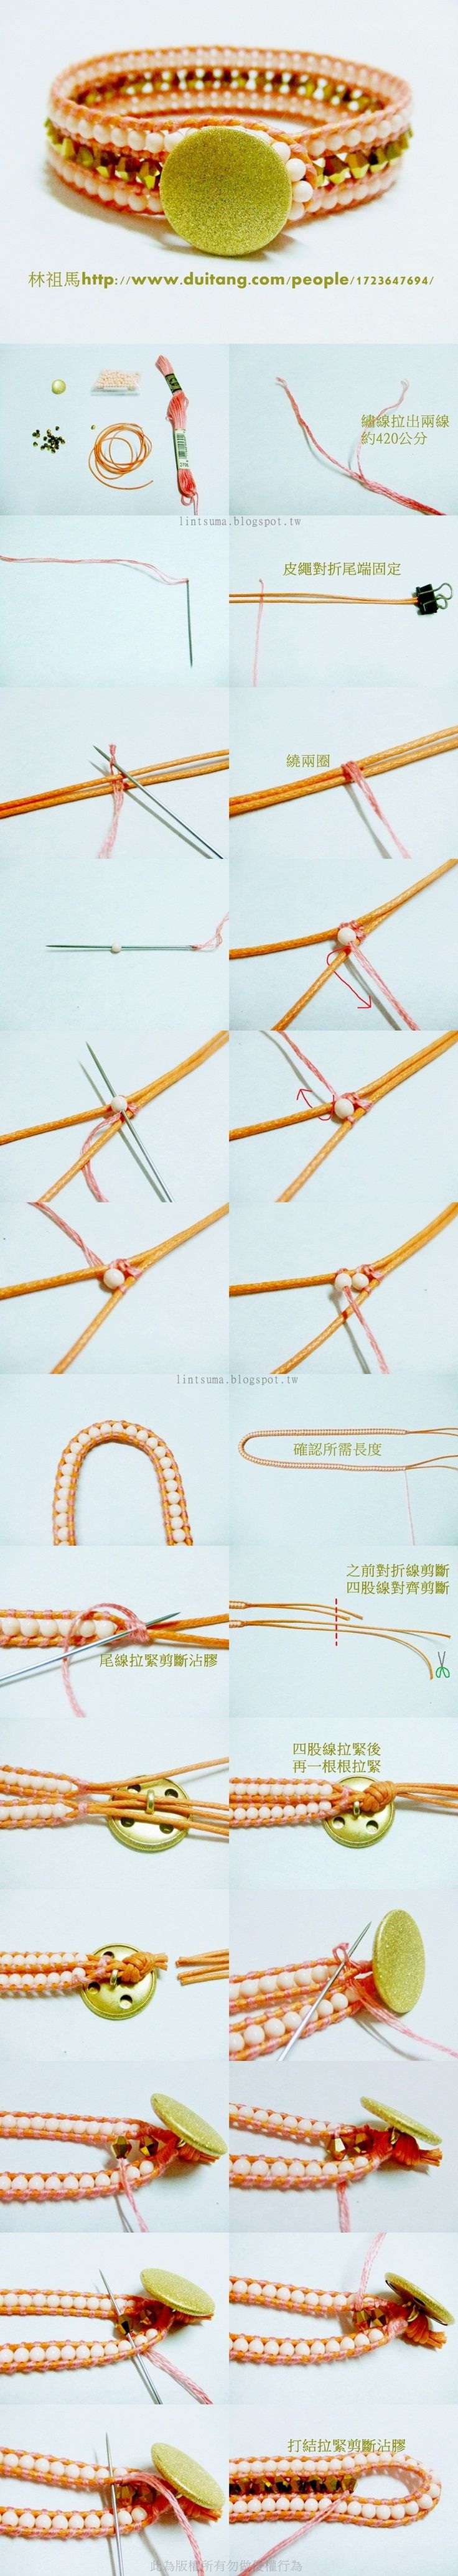 Picture tutorial of an open ended beaded wrap bracelet (link: http://www.liveinternet.ru/users/5012208/post234759688/).